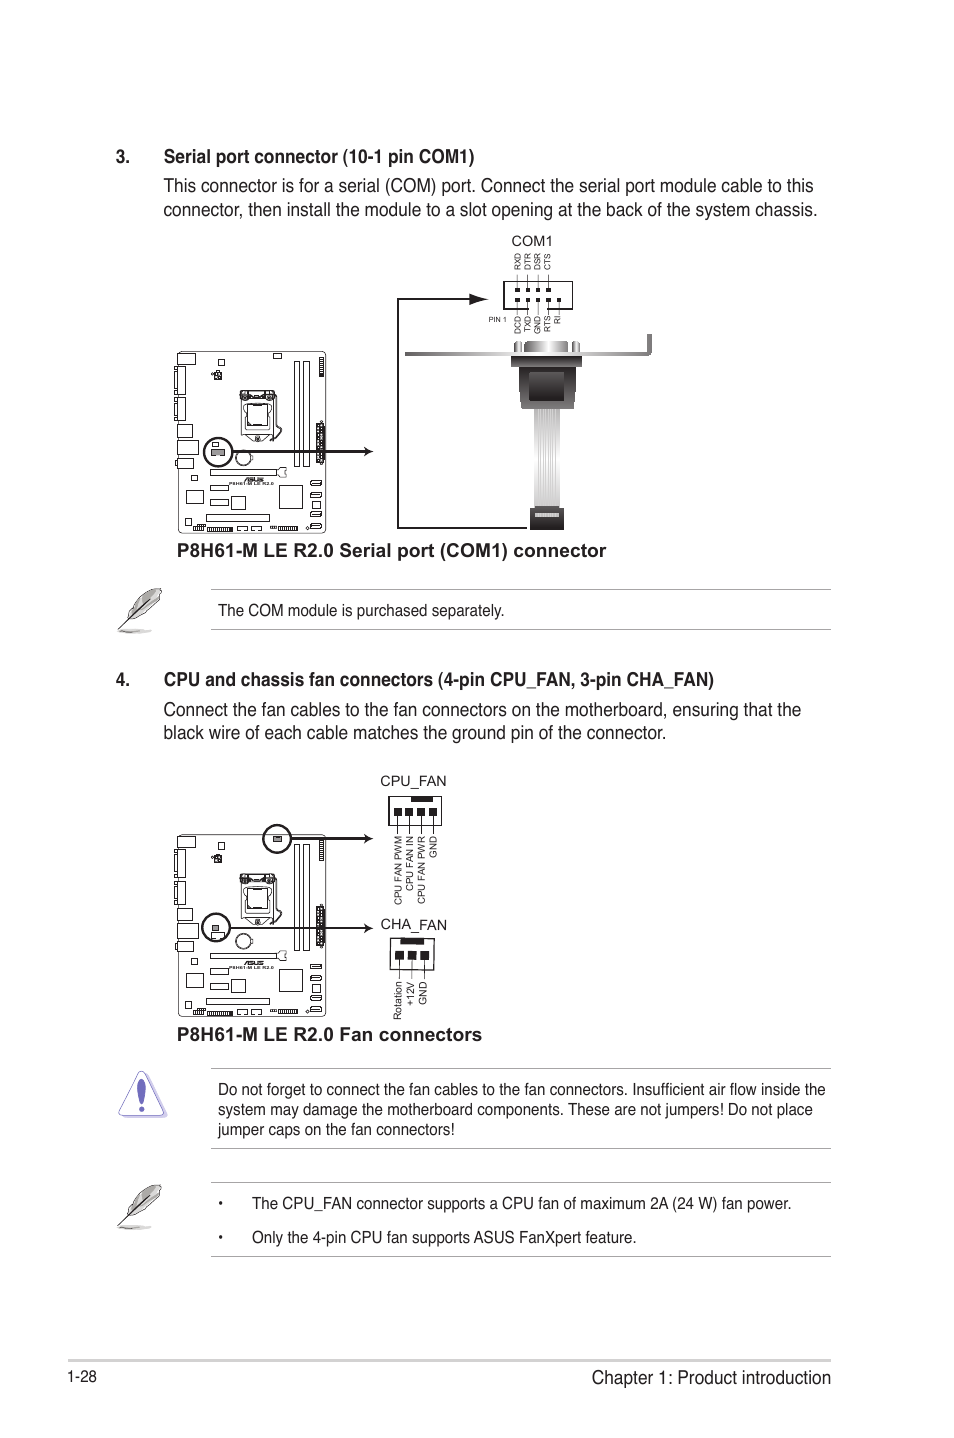 Chapter 1: product introduction | Asus P8H61-M LE R2 0 User